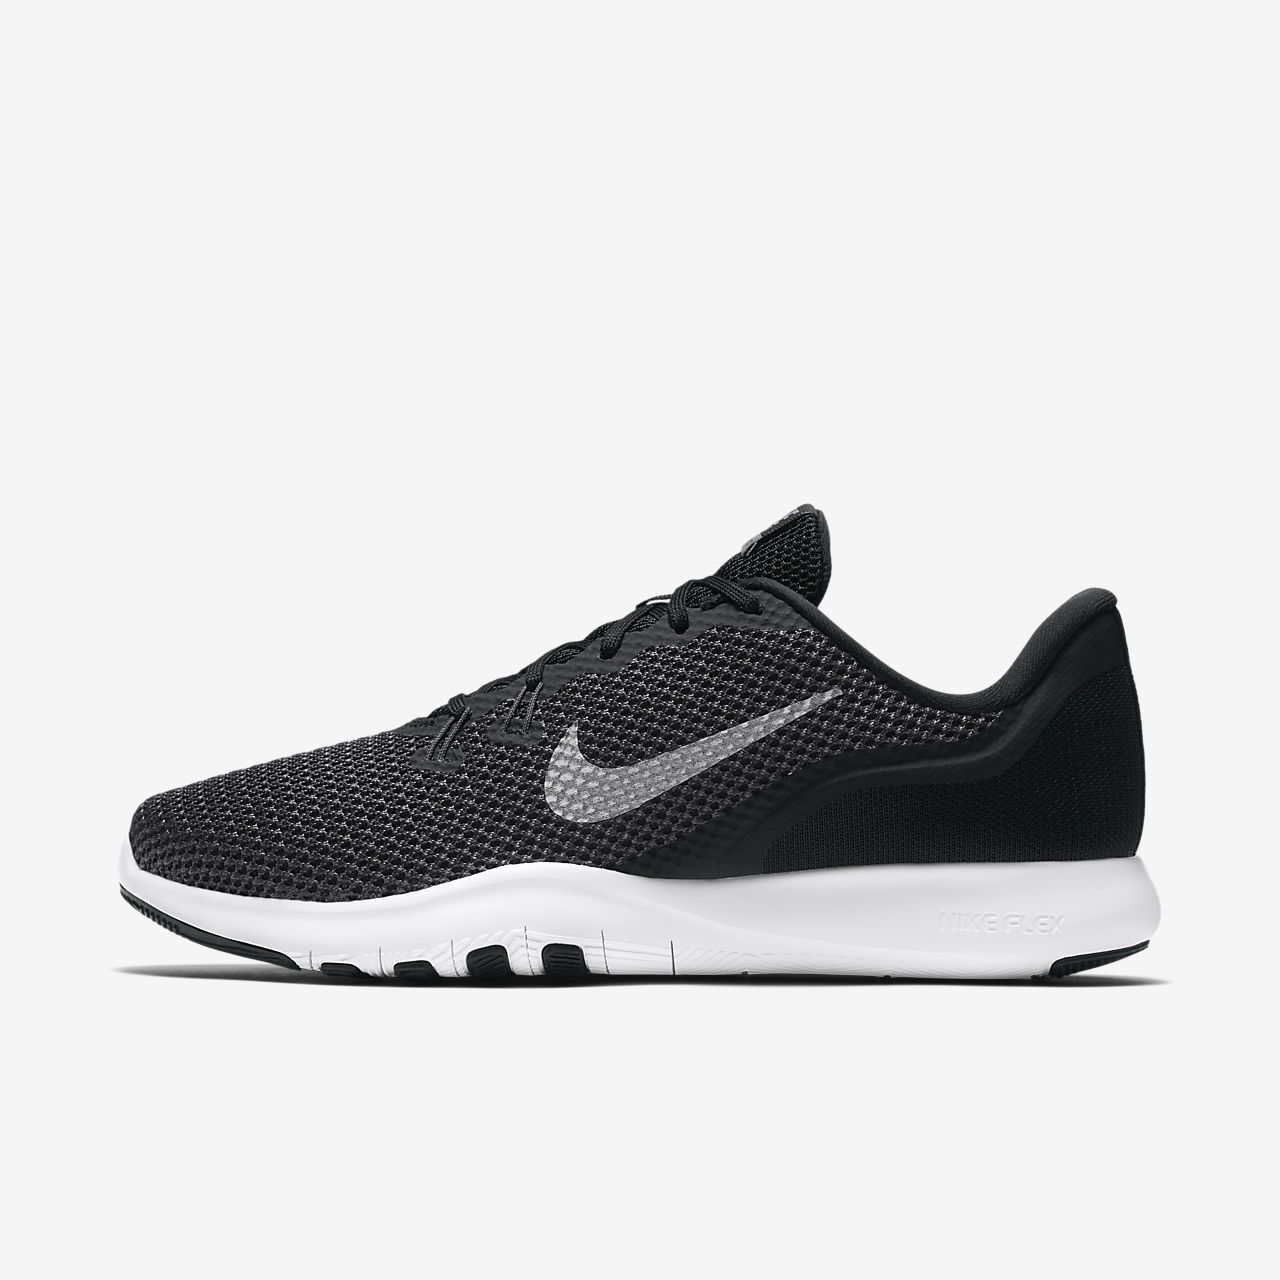 Nike Flex Trainer 7 Women's Training Shoe | Nike flex